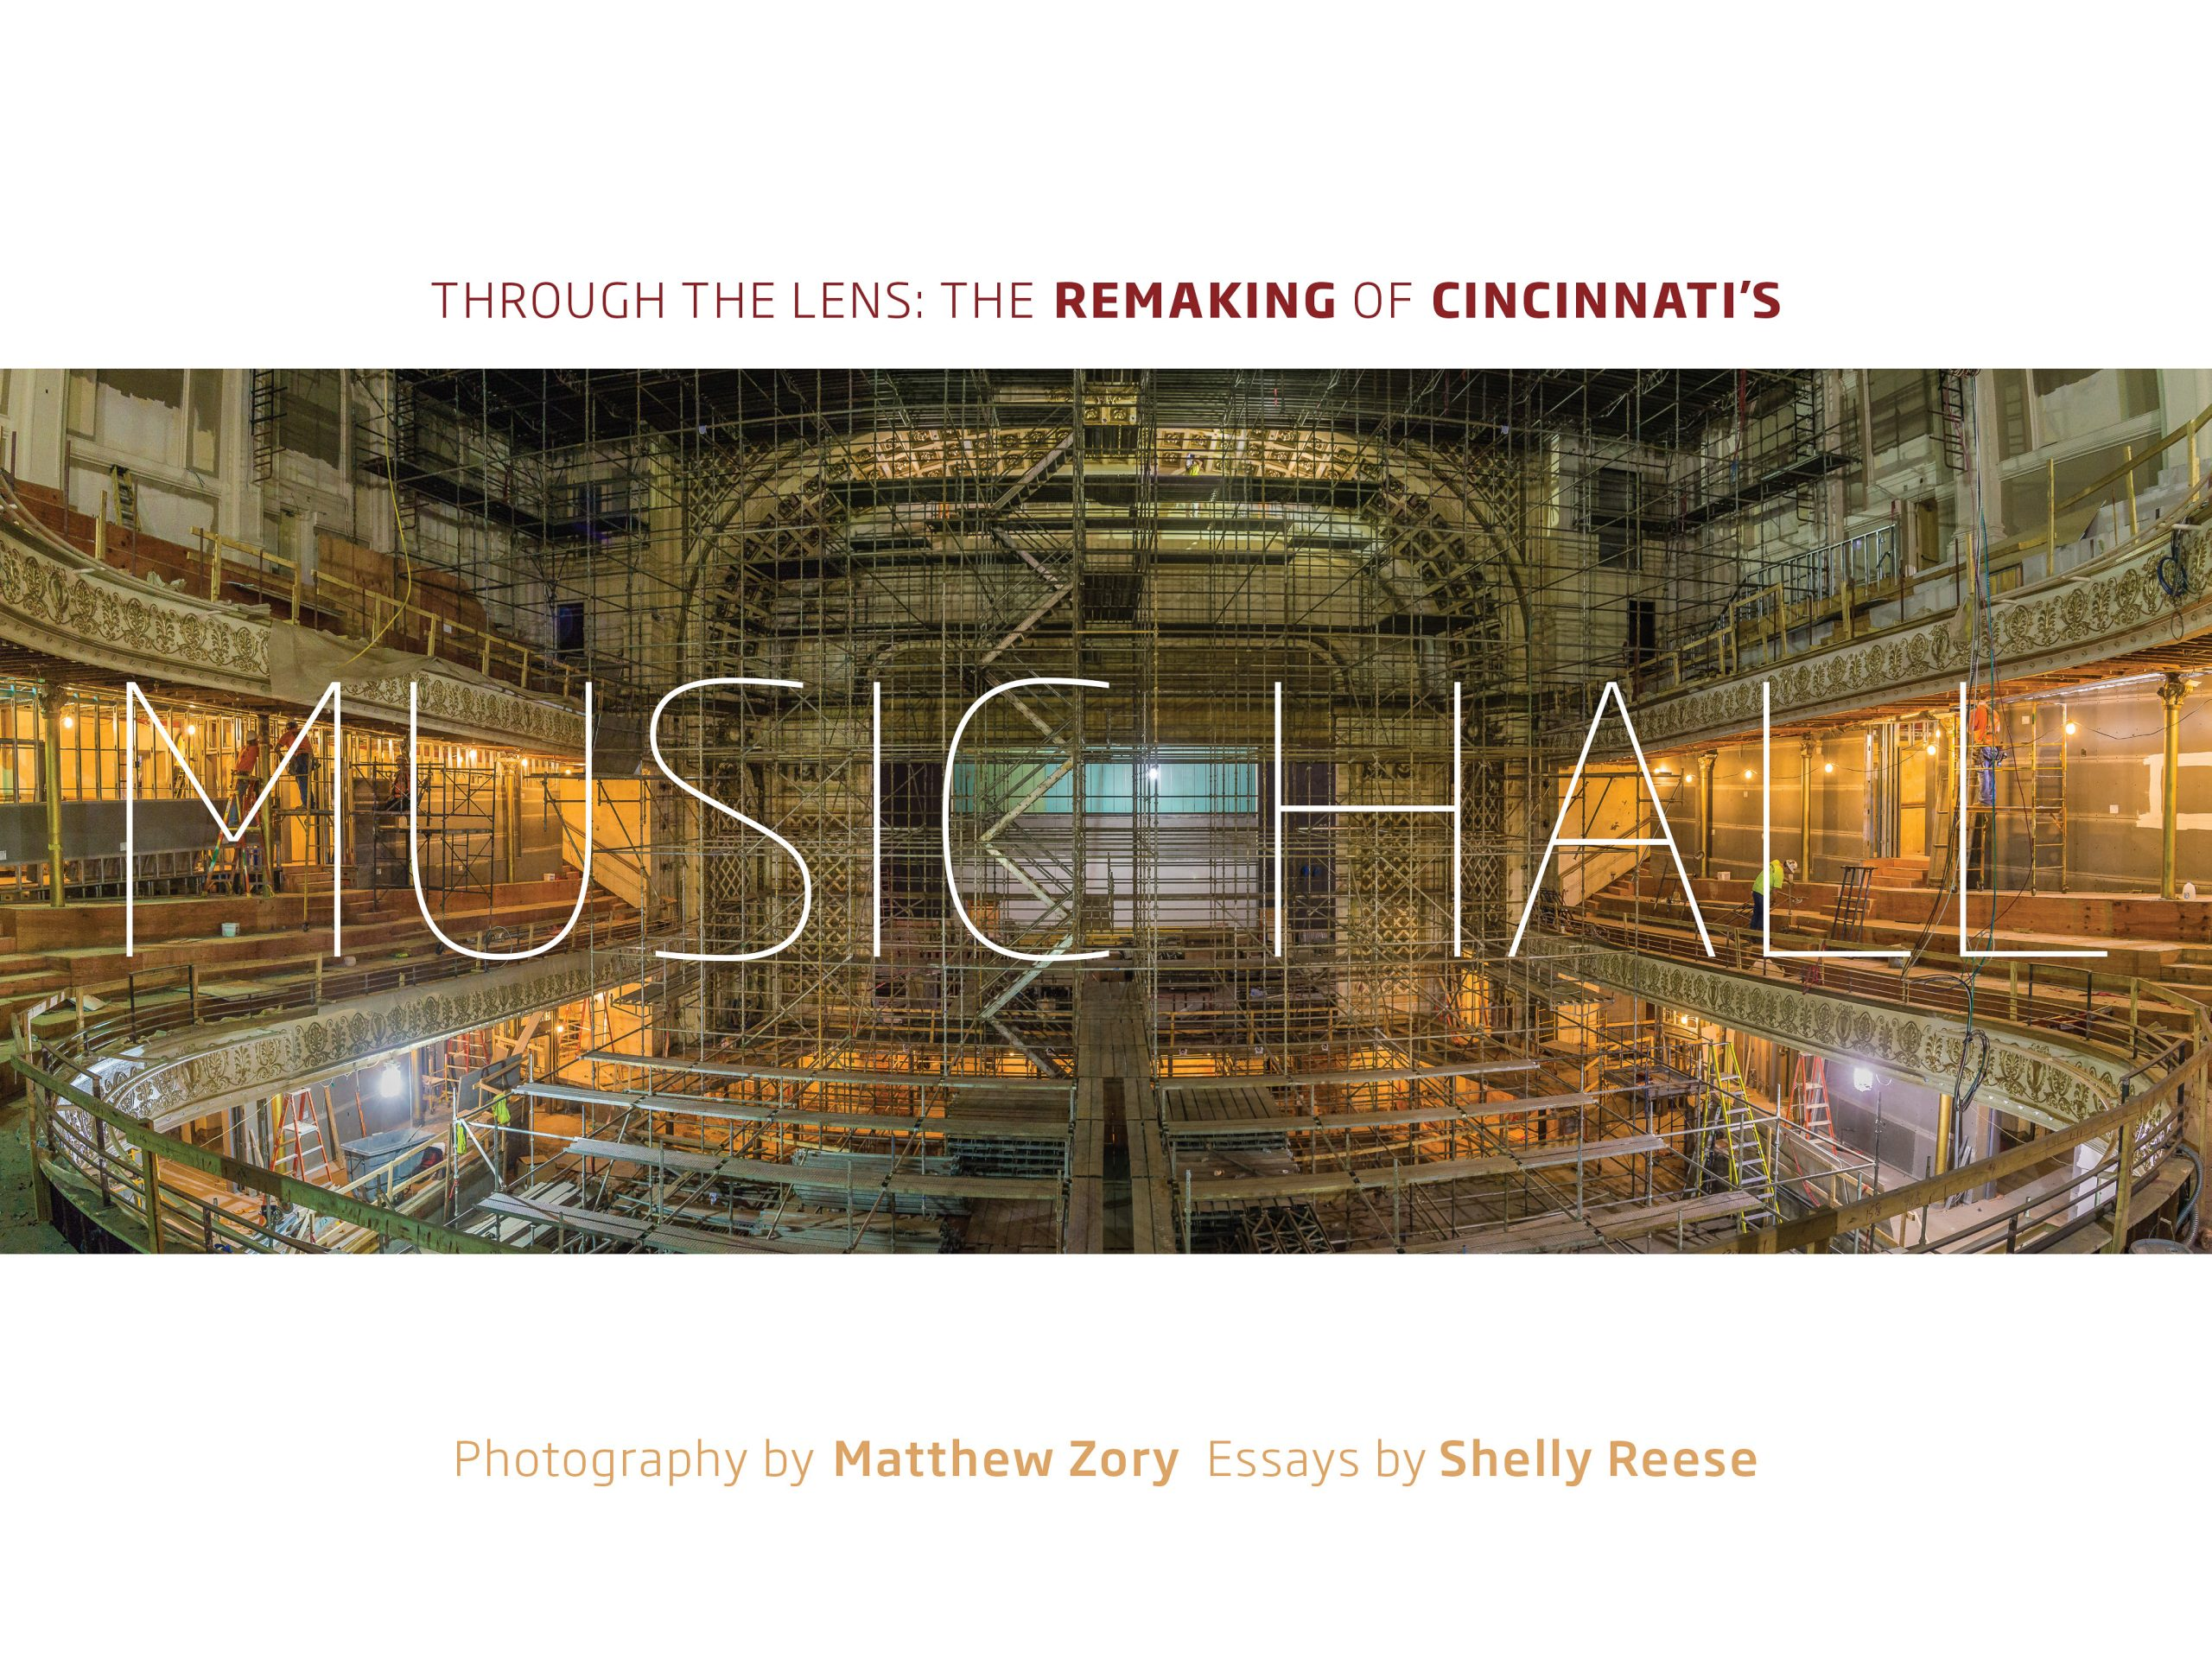 Through the Lens: The Remaking of Cincinnati's Music Hall by photographer and CSO musician Matthew Zory